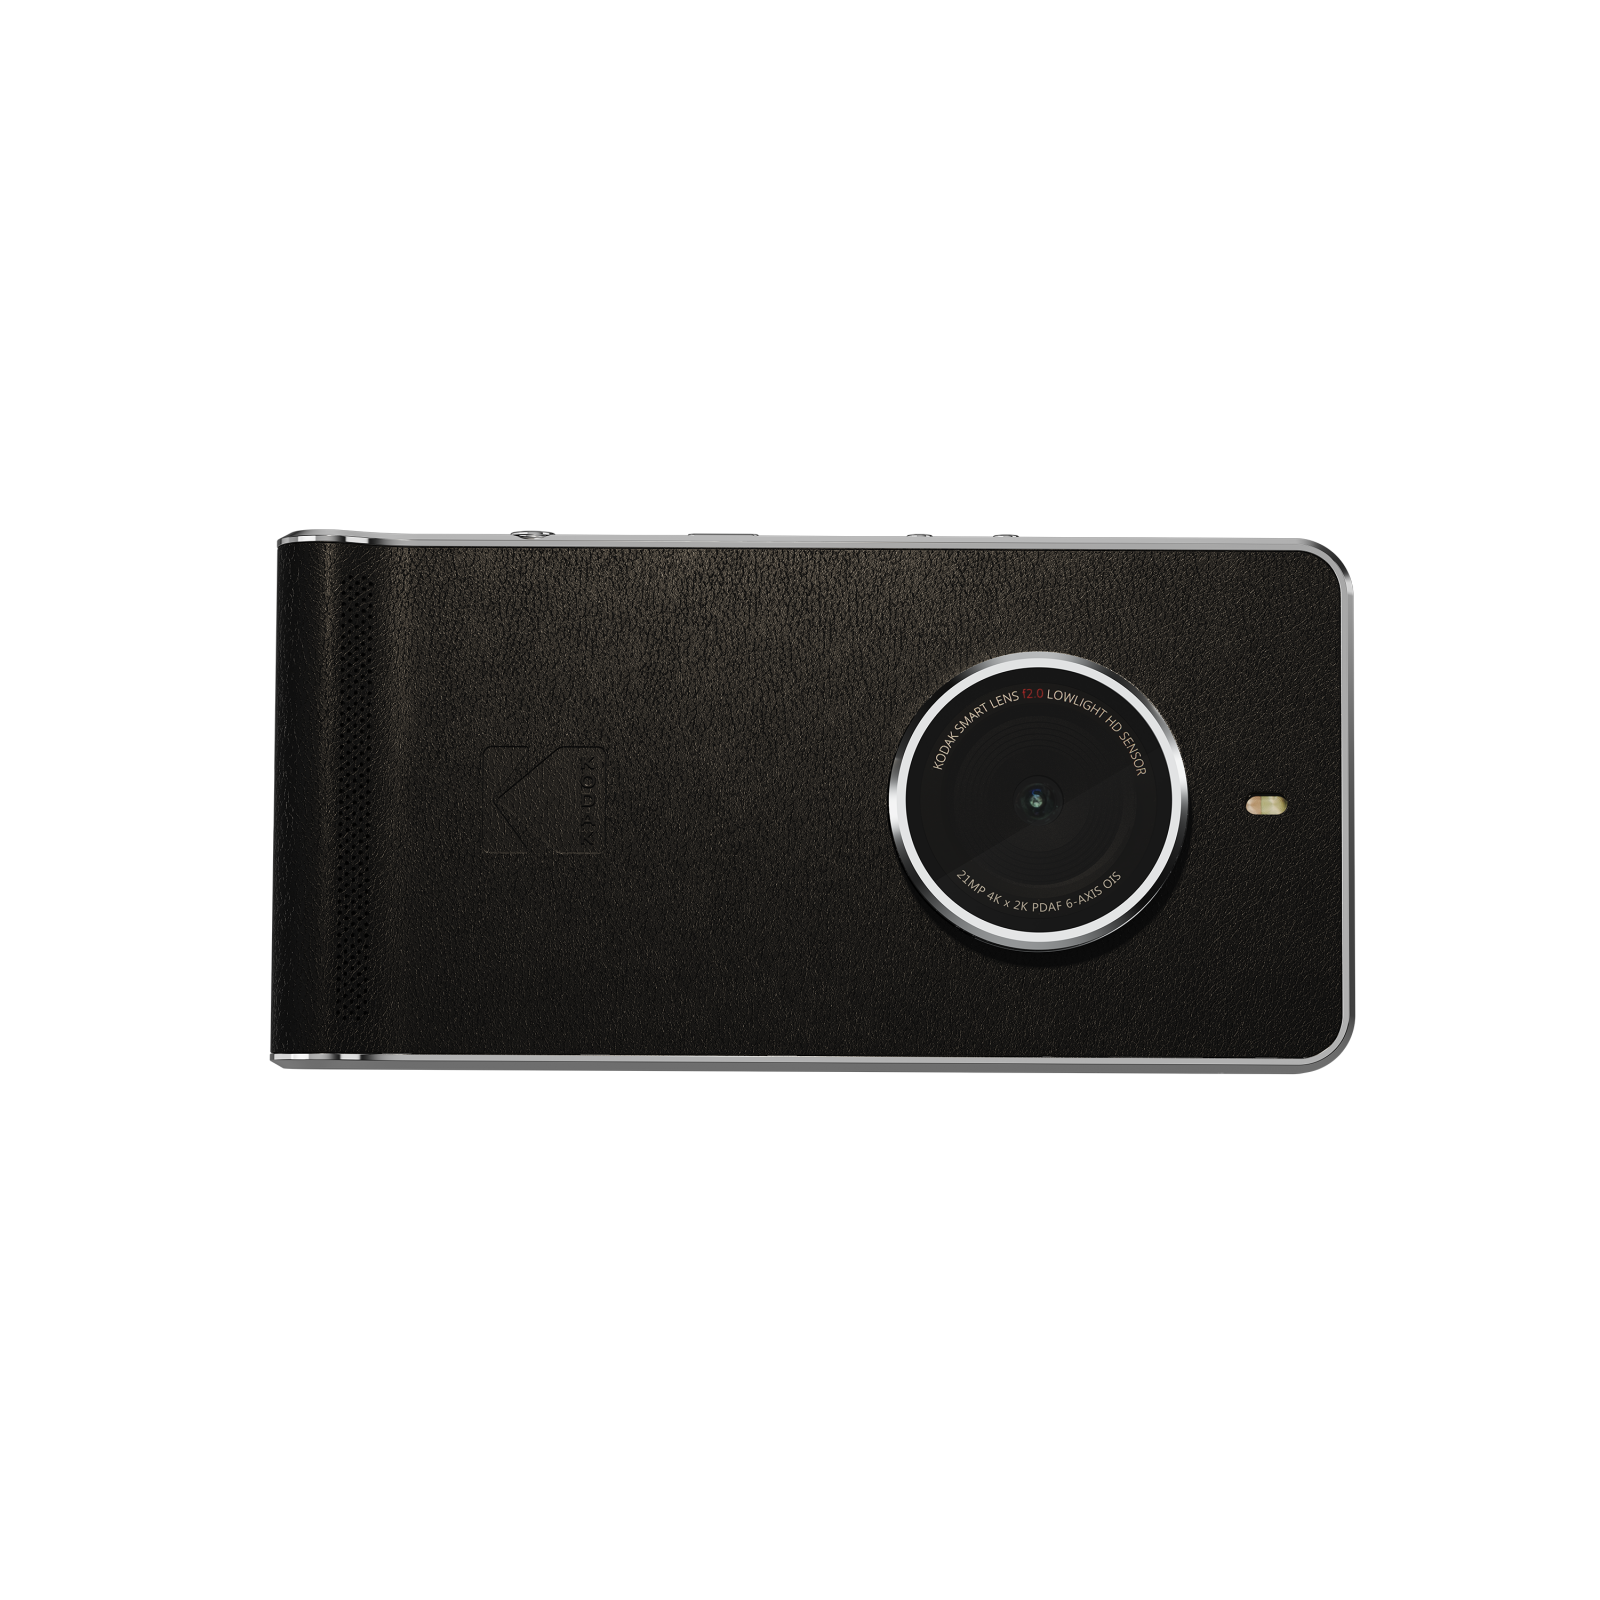 Kodak Ektra Preview - A 'classic reborn' for 2016?